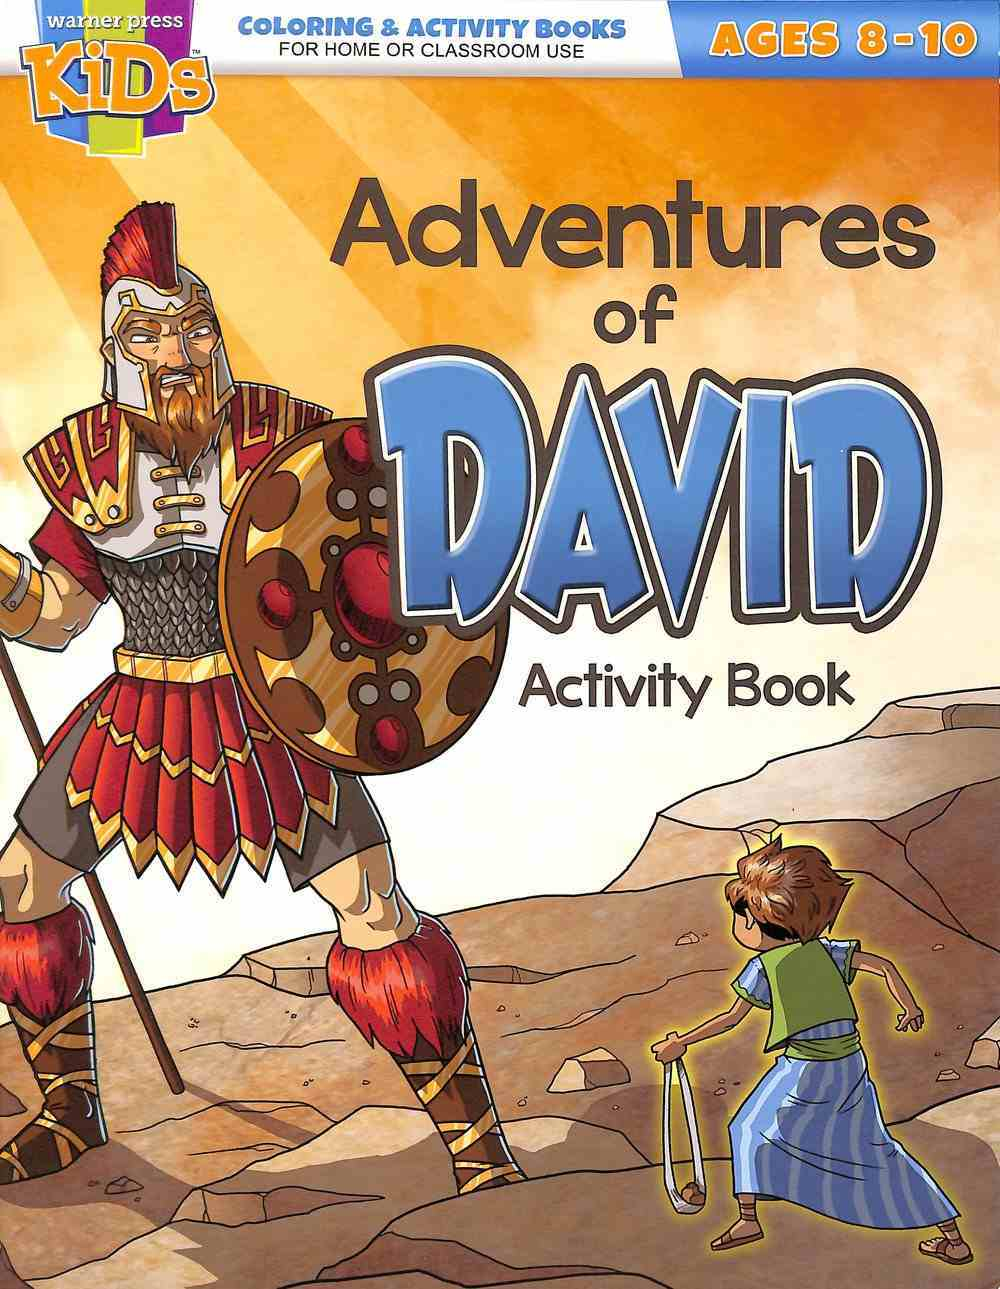 Adventures of David (Ages 8-10 Reproducible) (Warner Press Colouring & Activity Books Series) Paperback